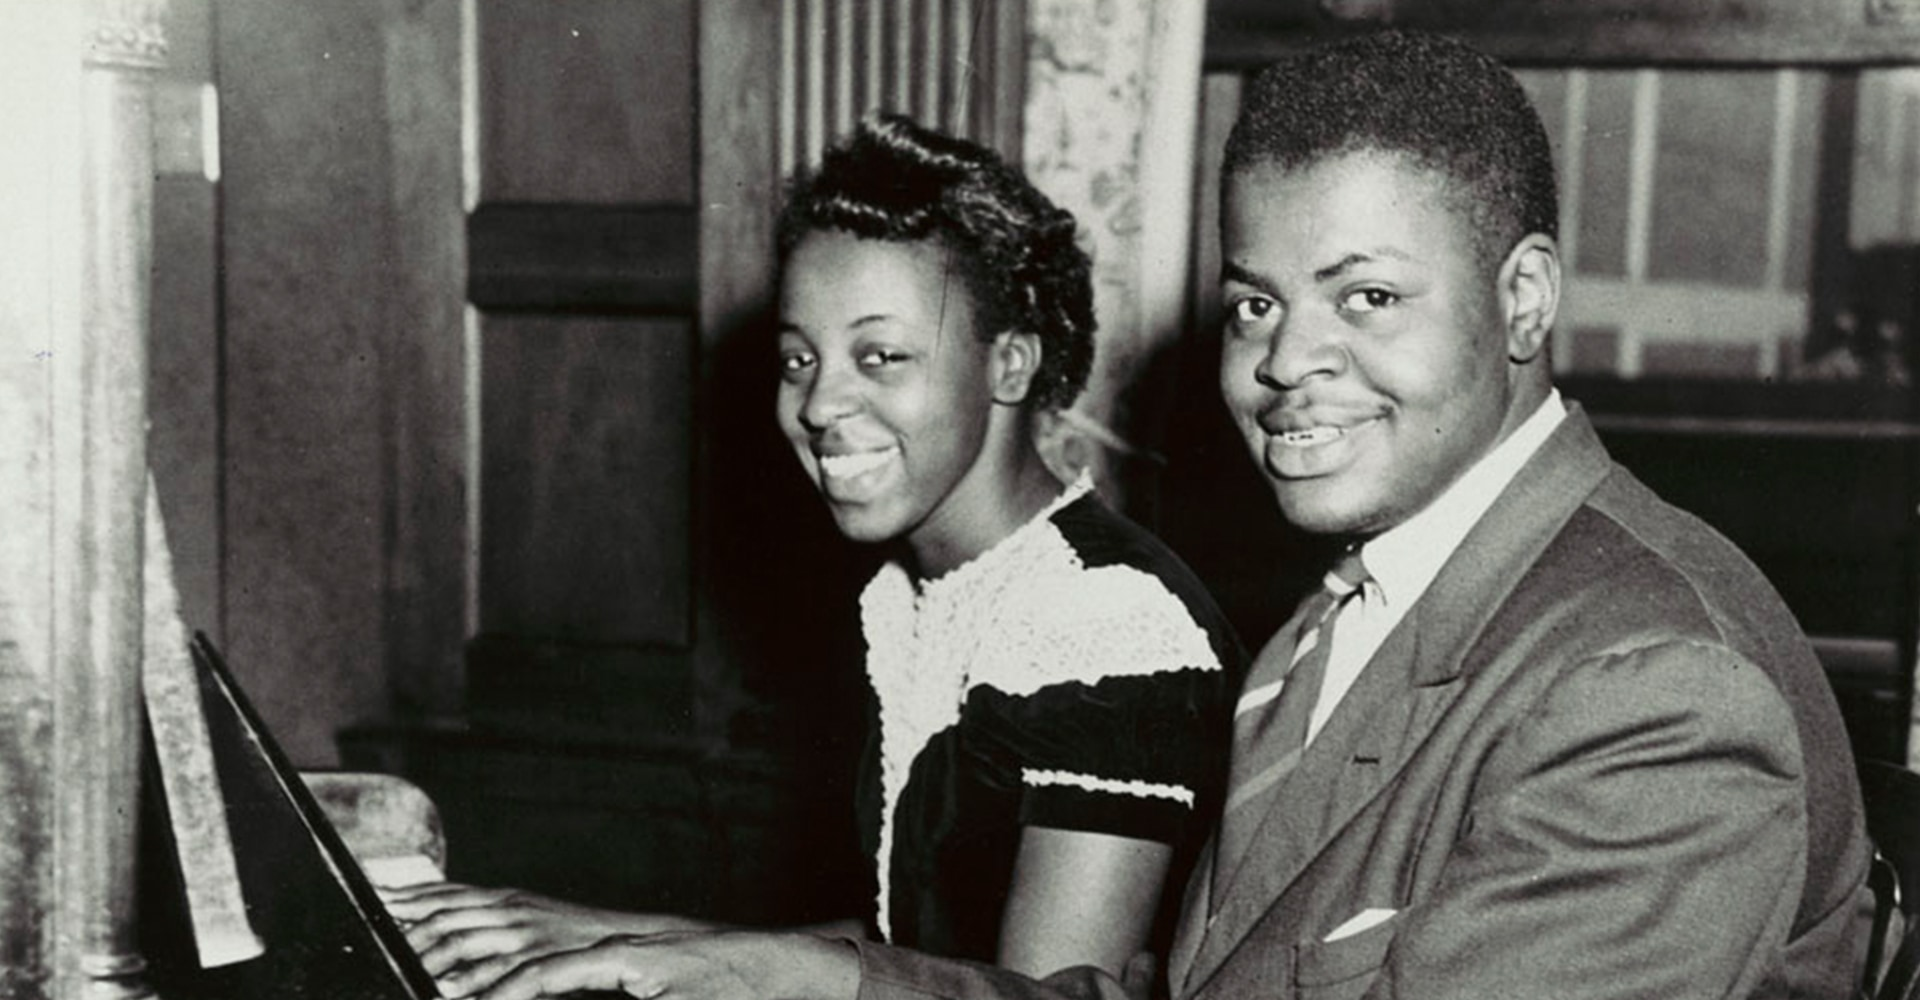 A young man and woman sit at a piano. They both face the camera and smile.